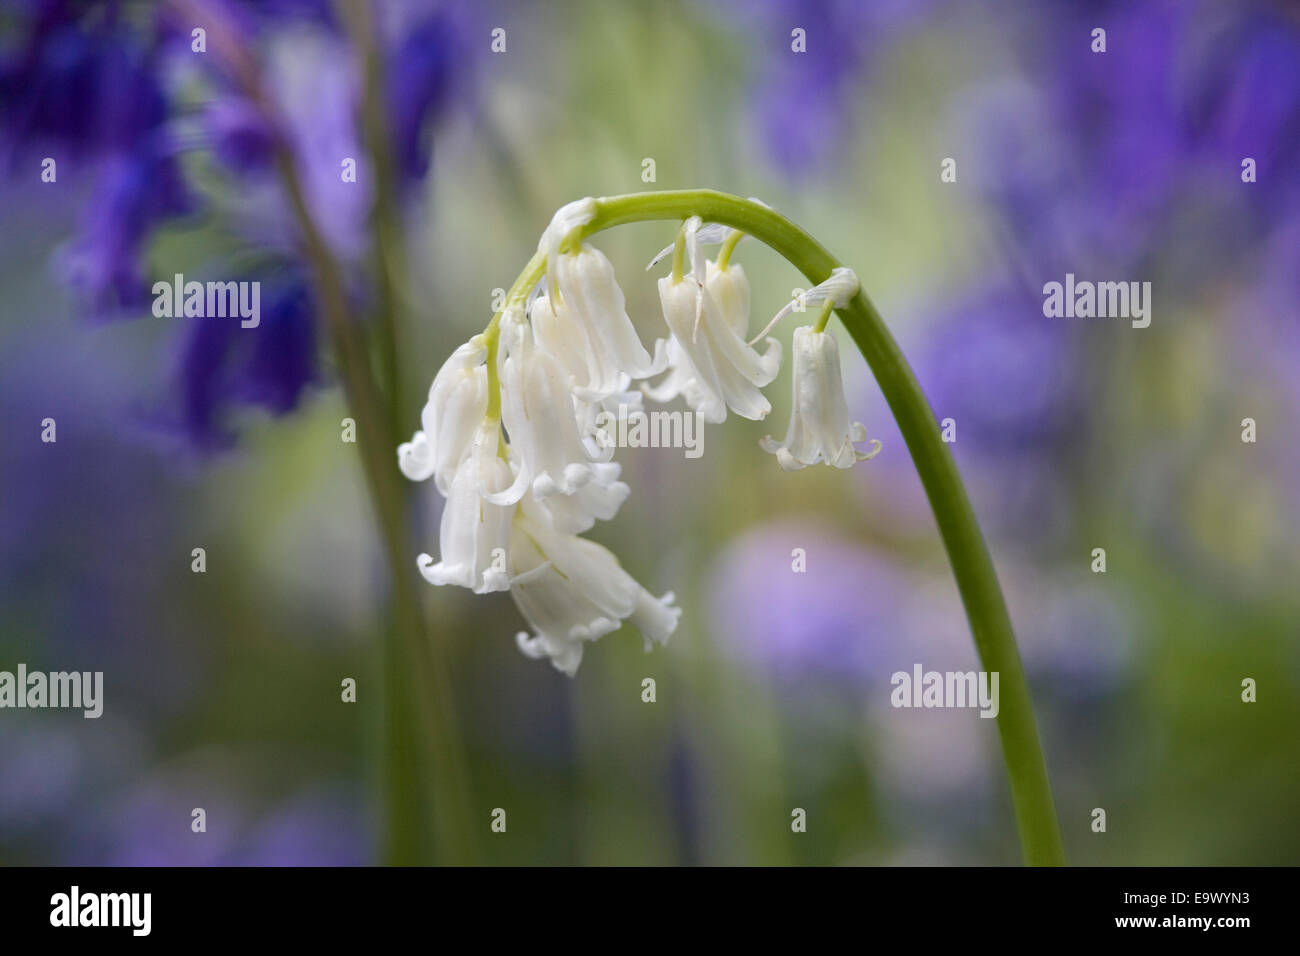 Great white bluebells flowers images wedding and flowers generous white bluebells flowers pictures inspiration wedding and mightylinksfo Gallery